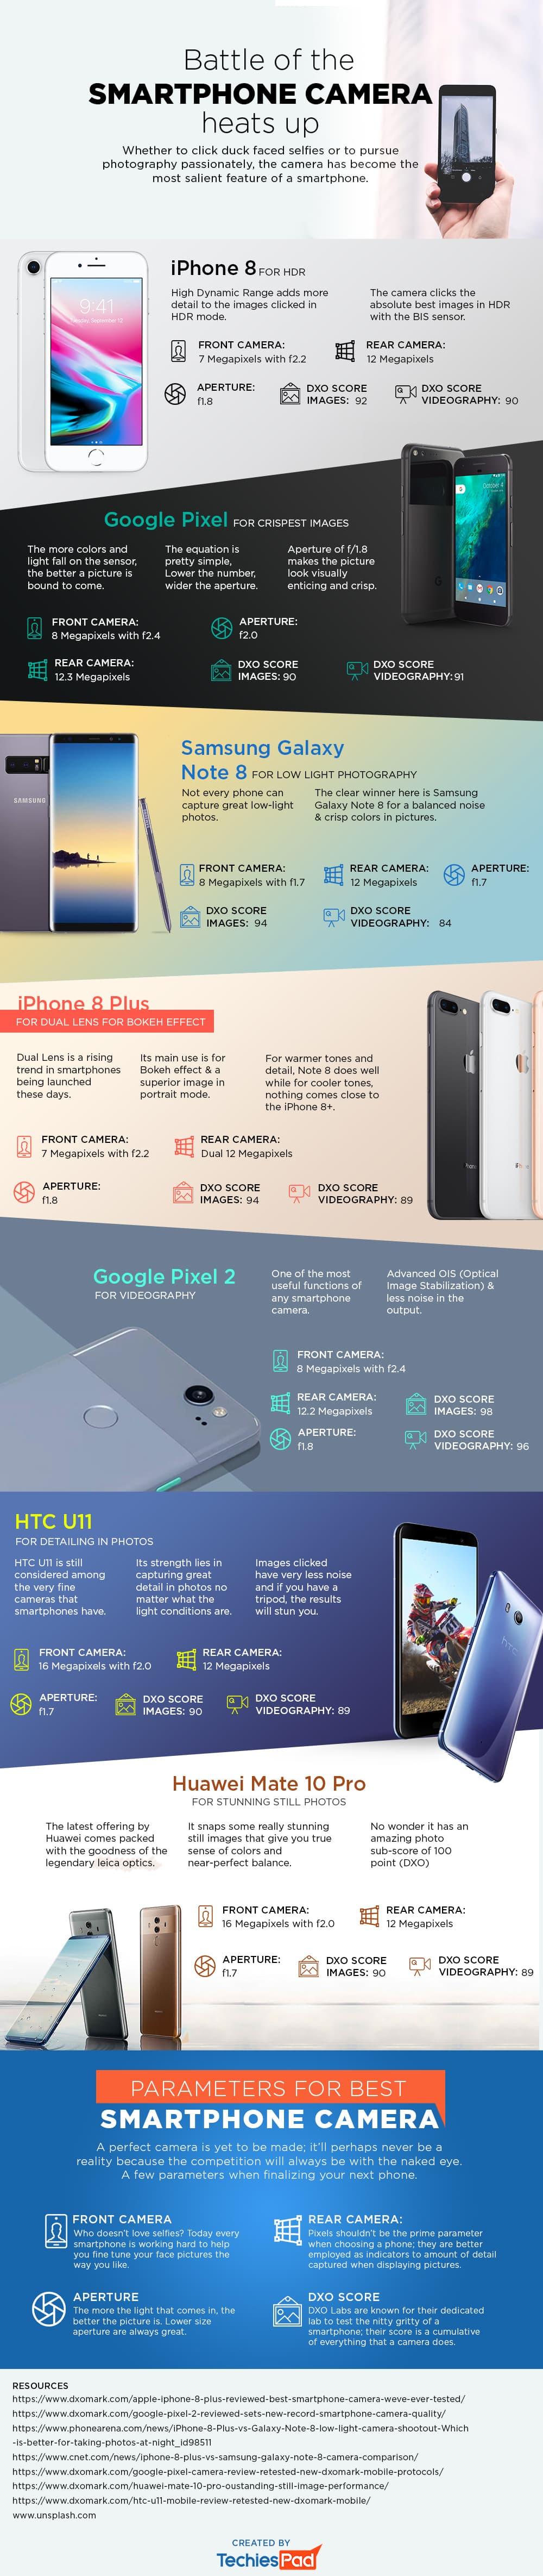 """Battle of the Smartphone Camera Heats Up"" – Infographic"